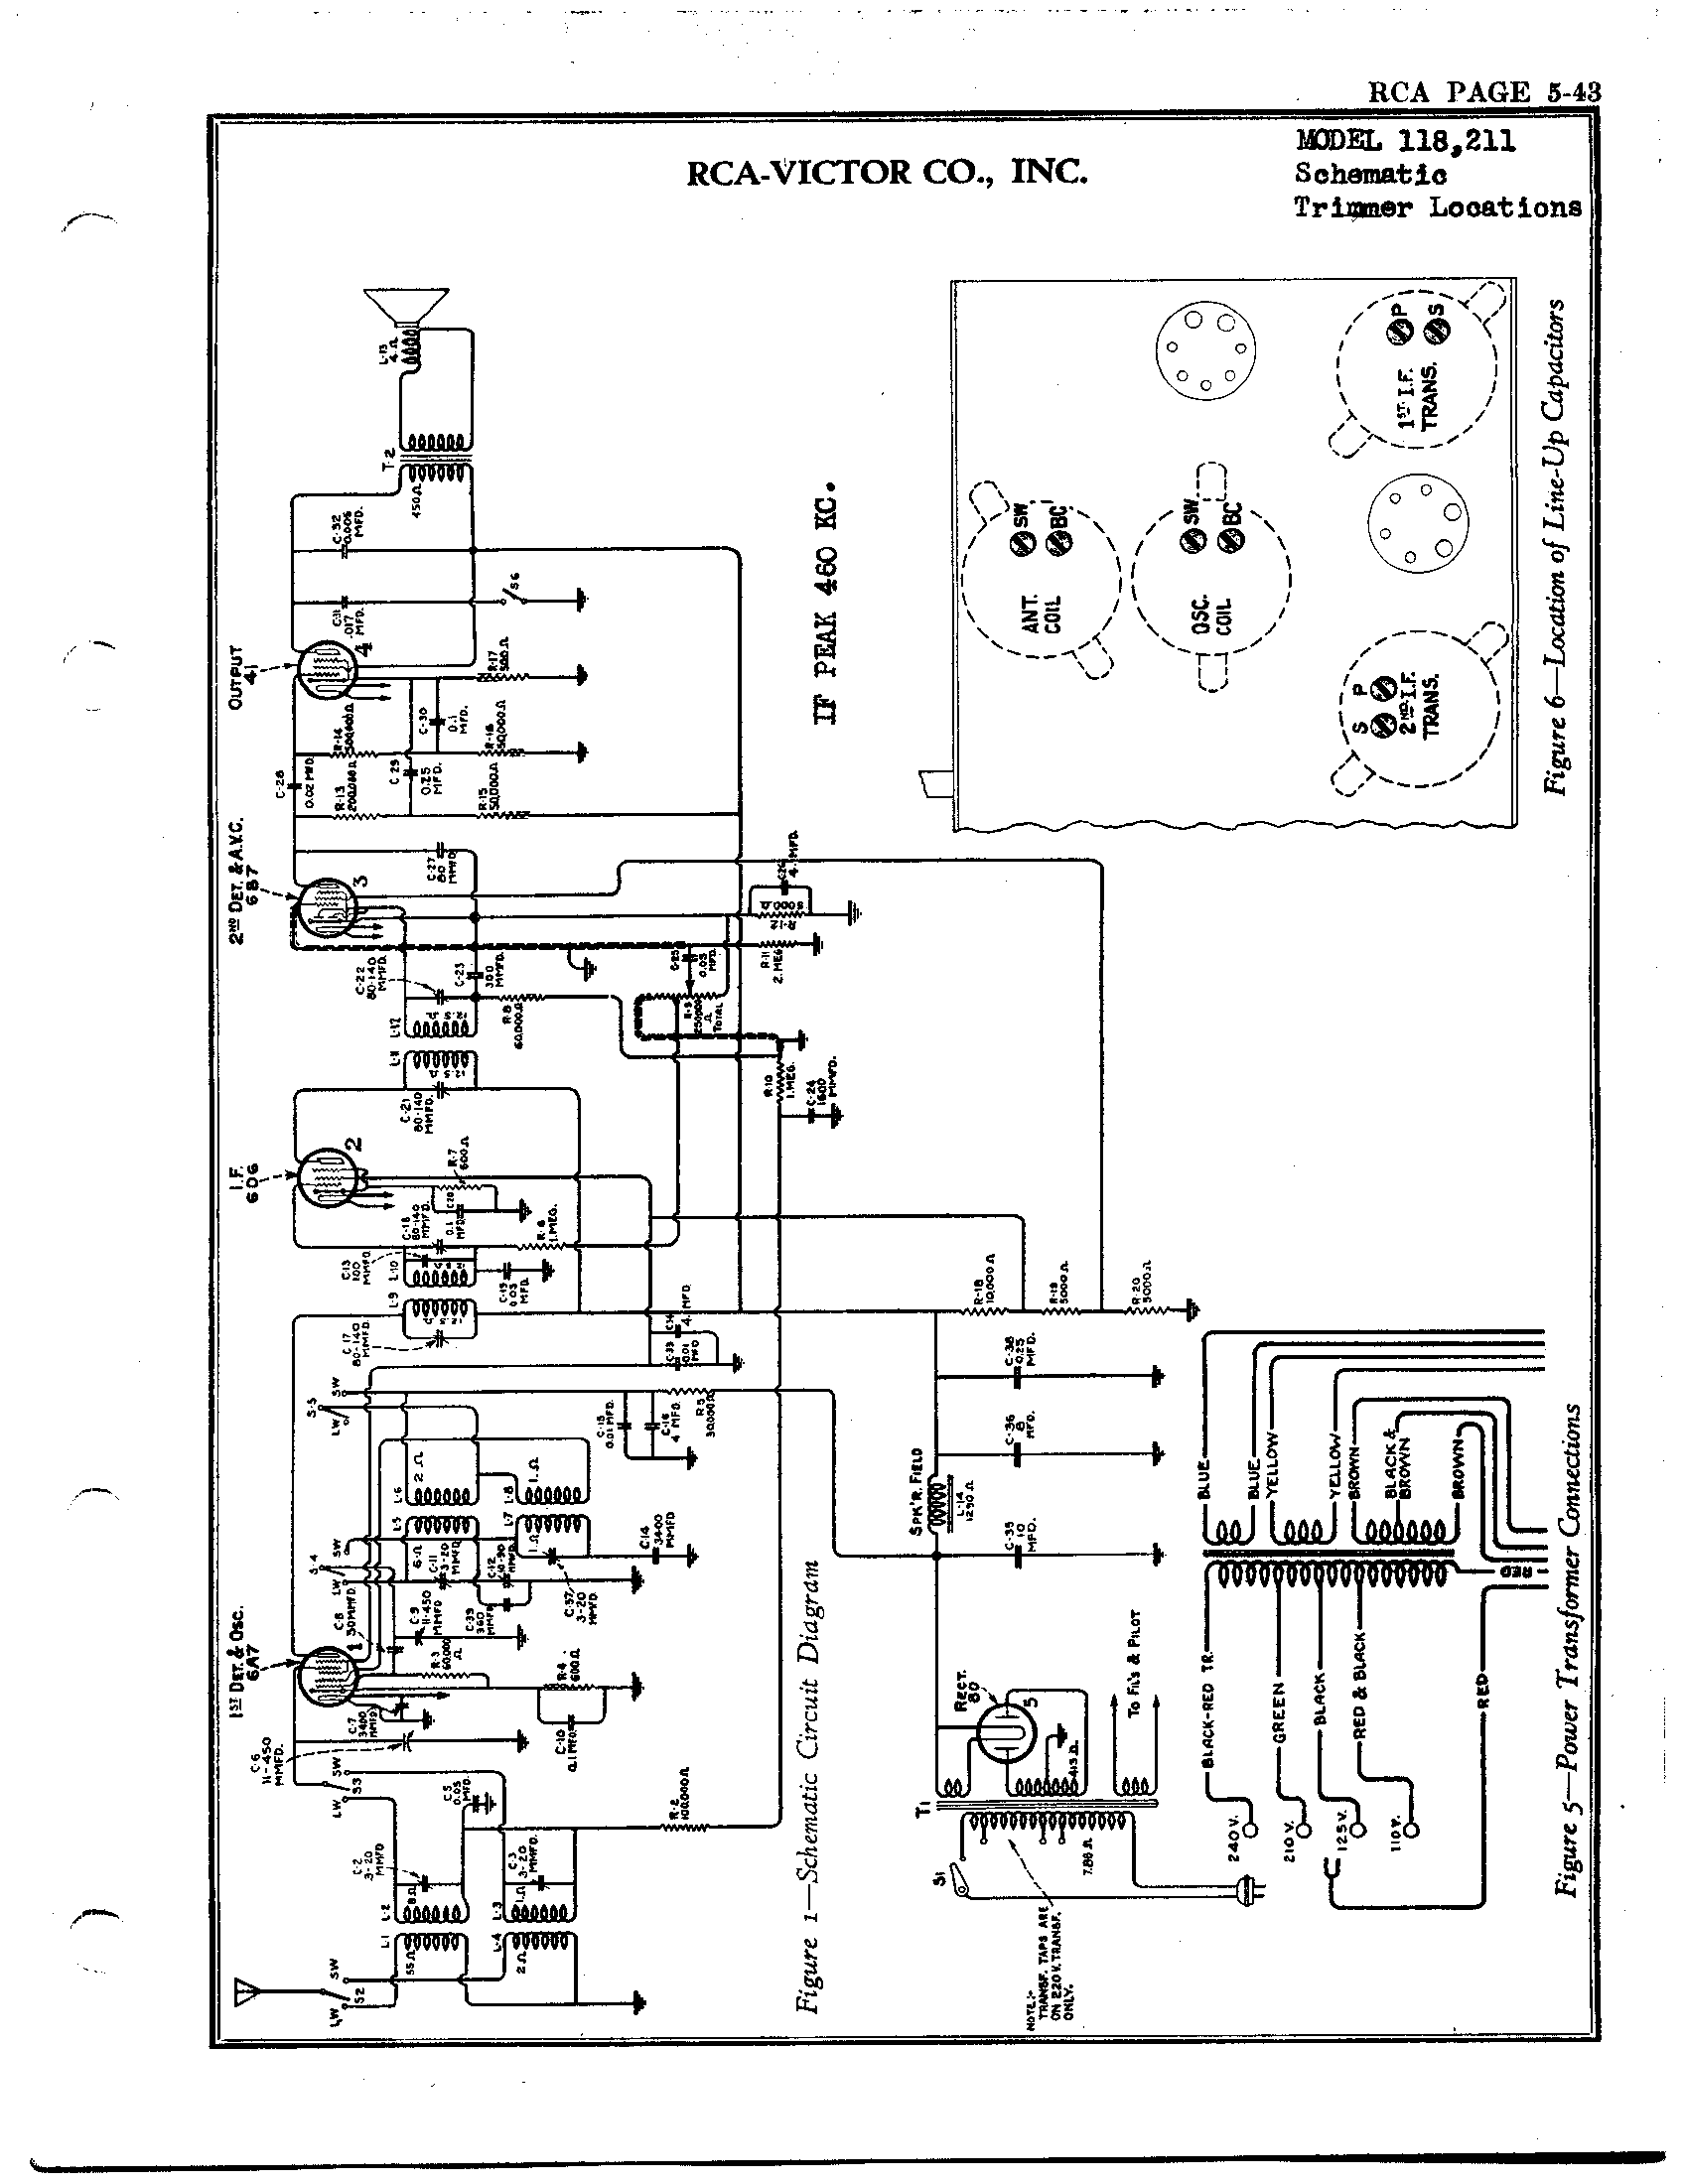 Antique Automobile Radio Inc Wiring Diagram Auto Electrical Eaton Br50spa Related With